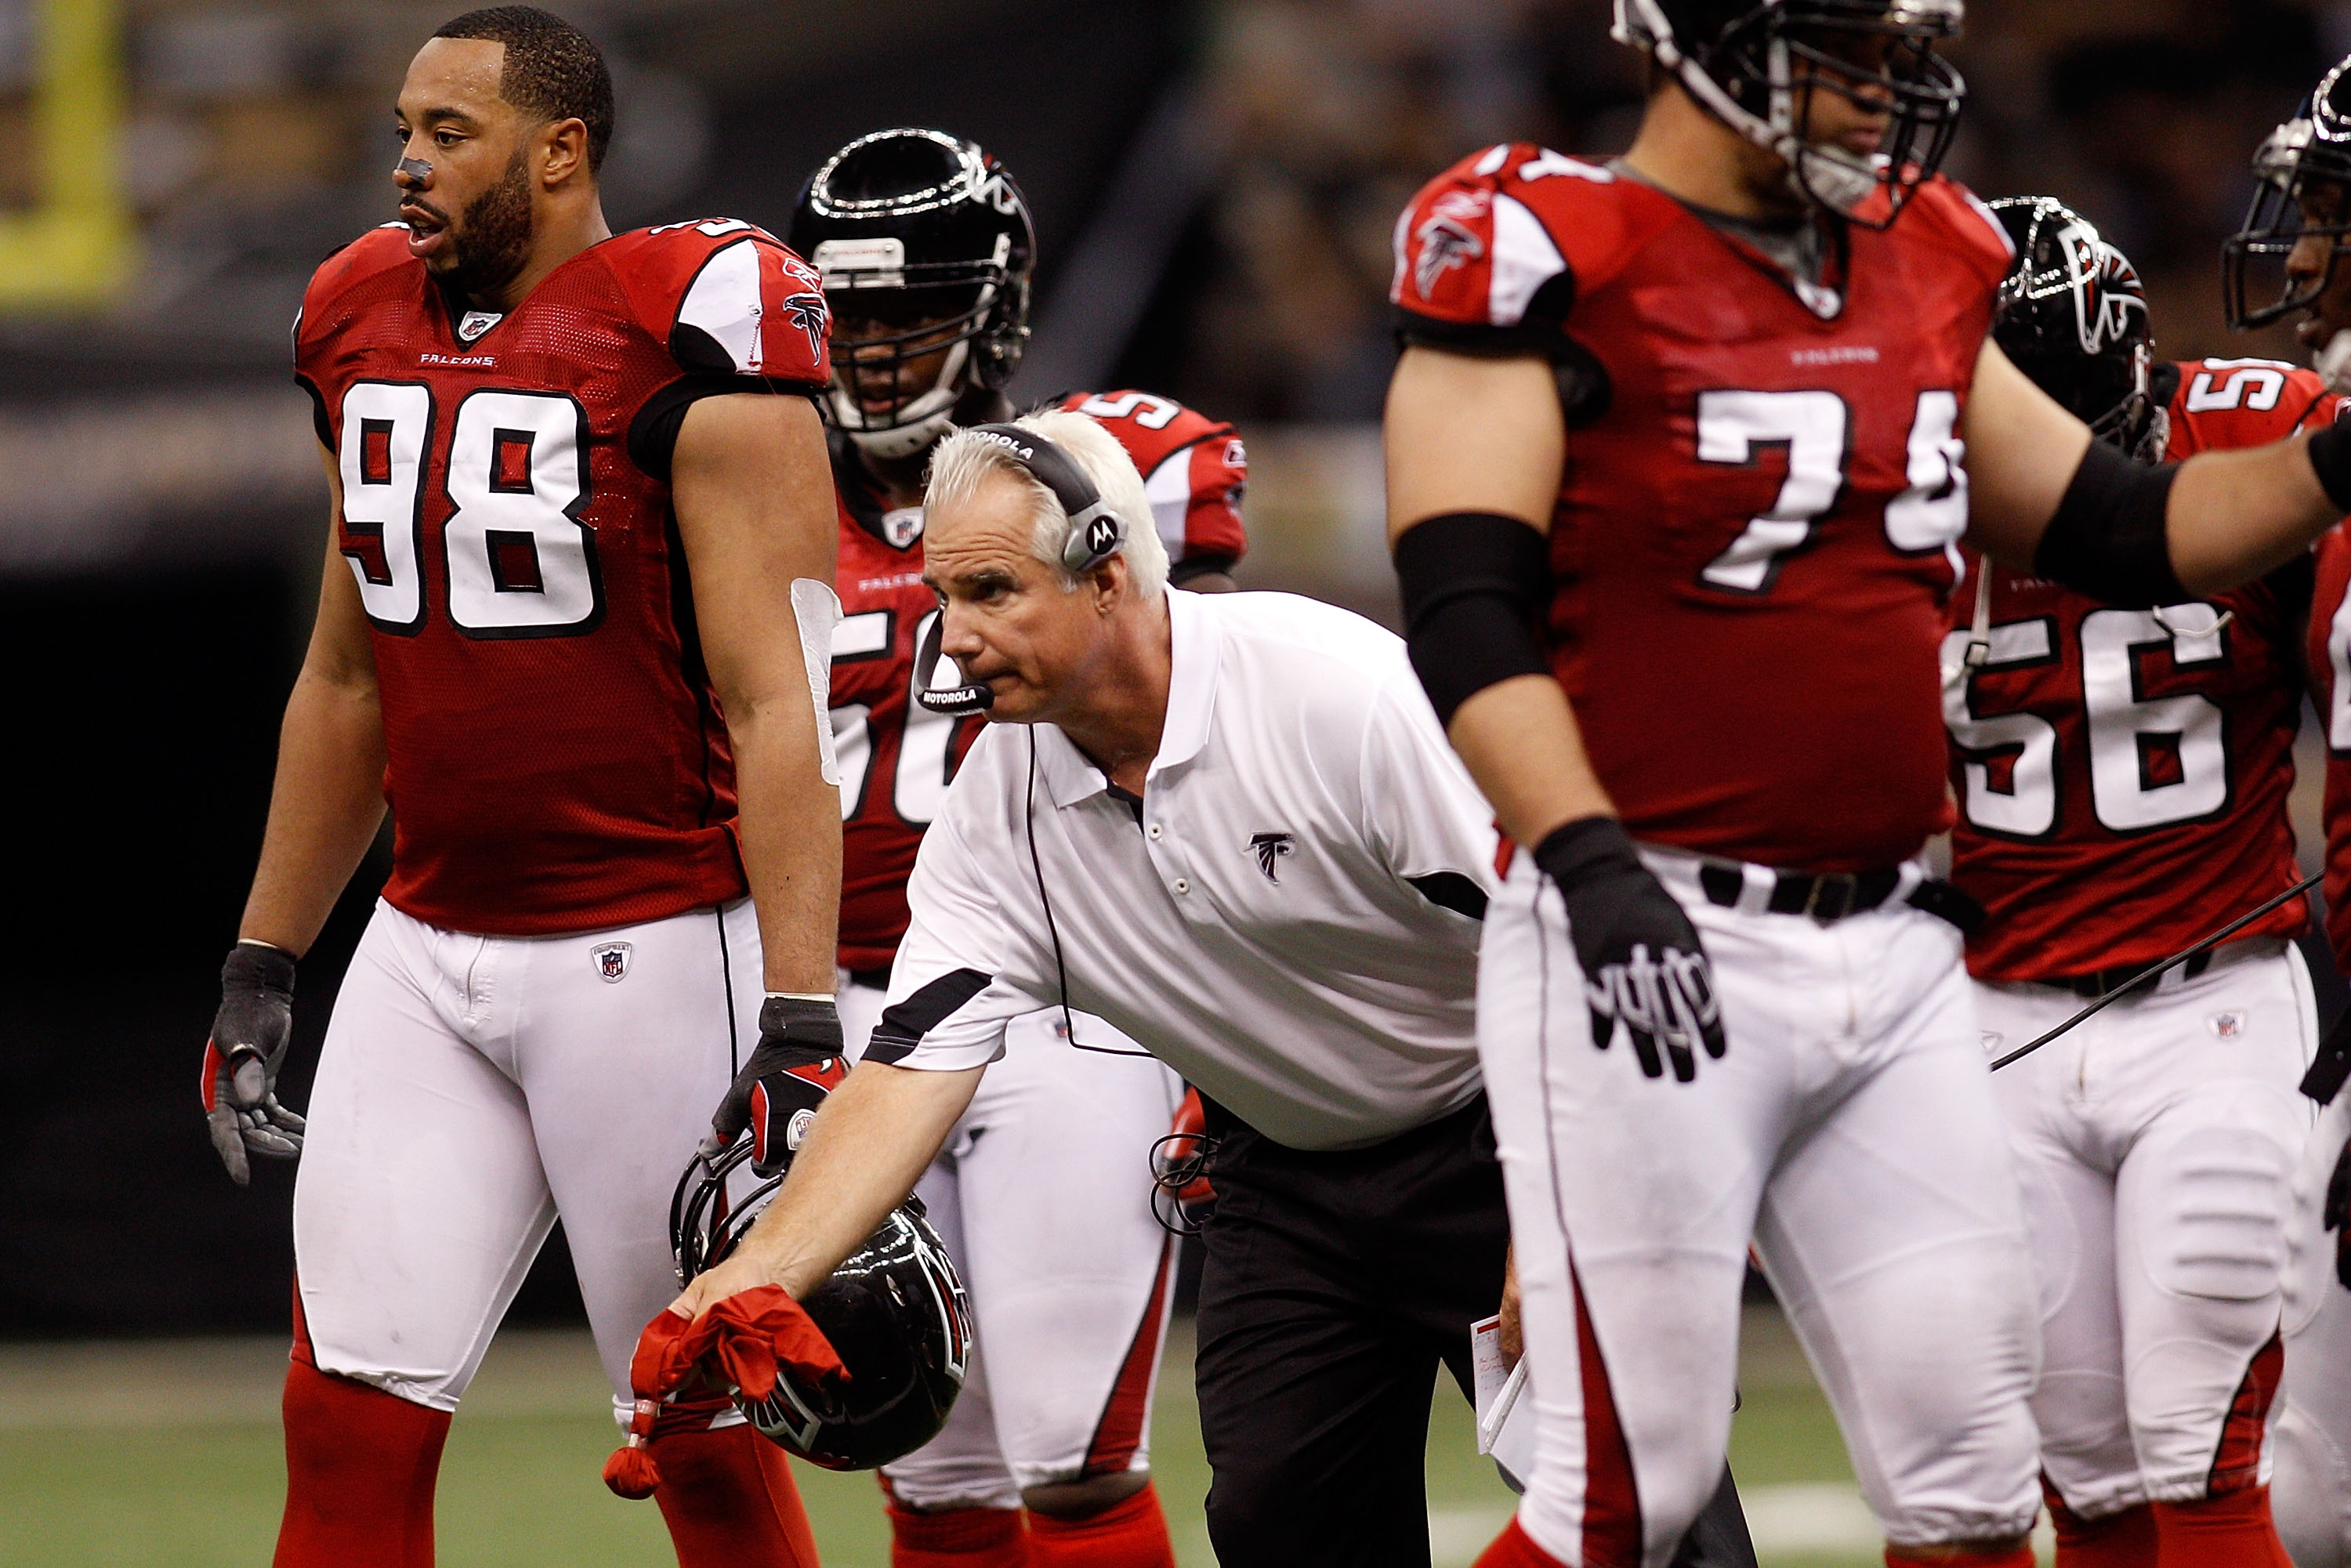 NEW ORLEANS - SEPTEMBER 26:  Head coach Mike Smith of the Atlanta Falcons throws out the red challenge flag during the game against the New Orleans Saints at the Louisiana Superdome on September 26, 2010 in New Orleans, Louisiana. The Falcons defeated the